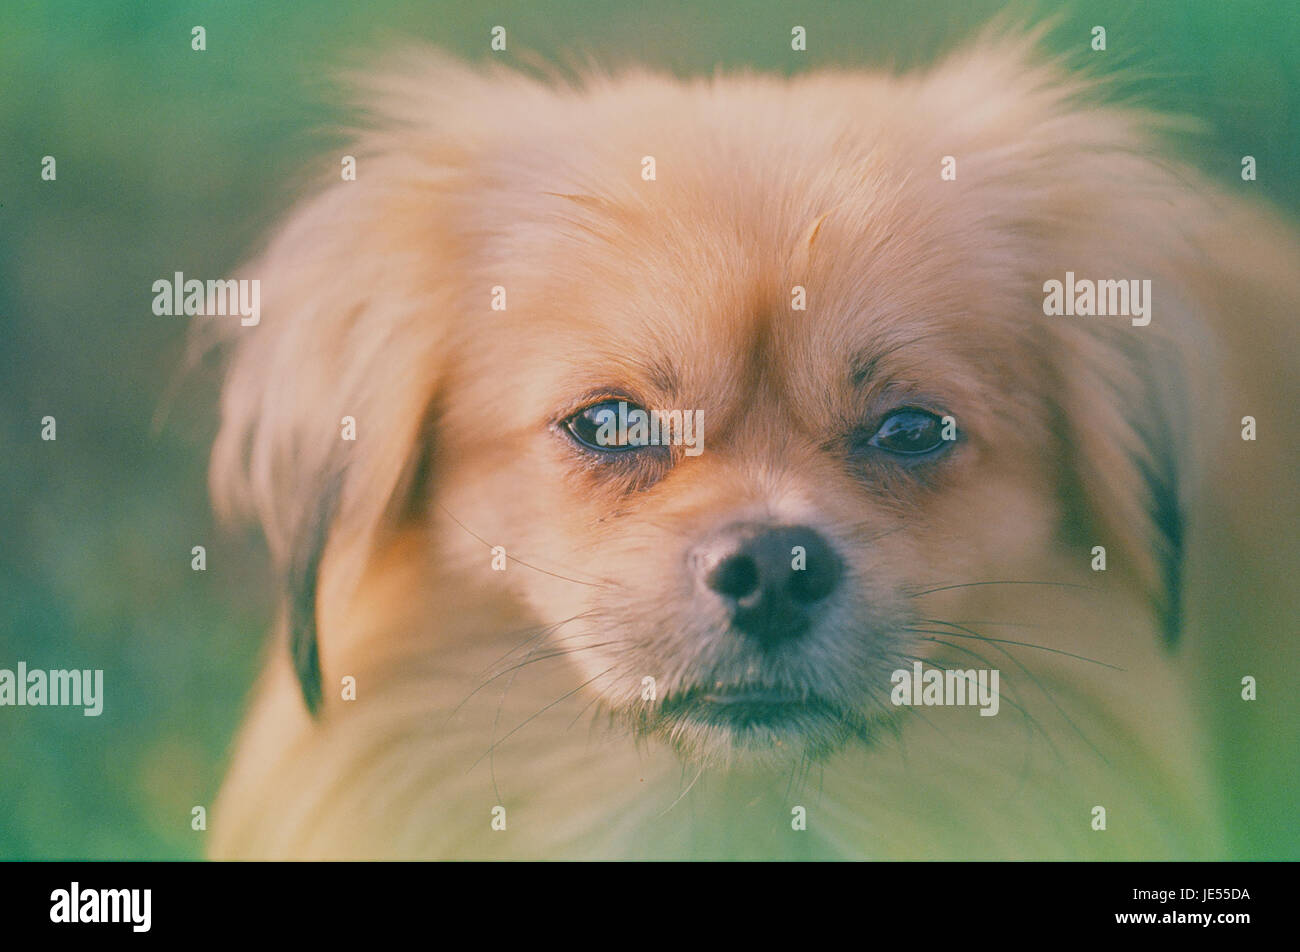 Expired film photo of pekingese dog portrait - Stock Image